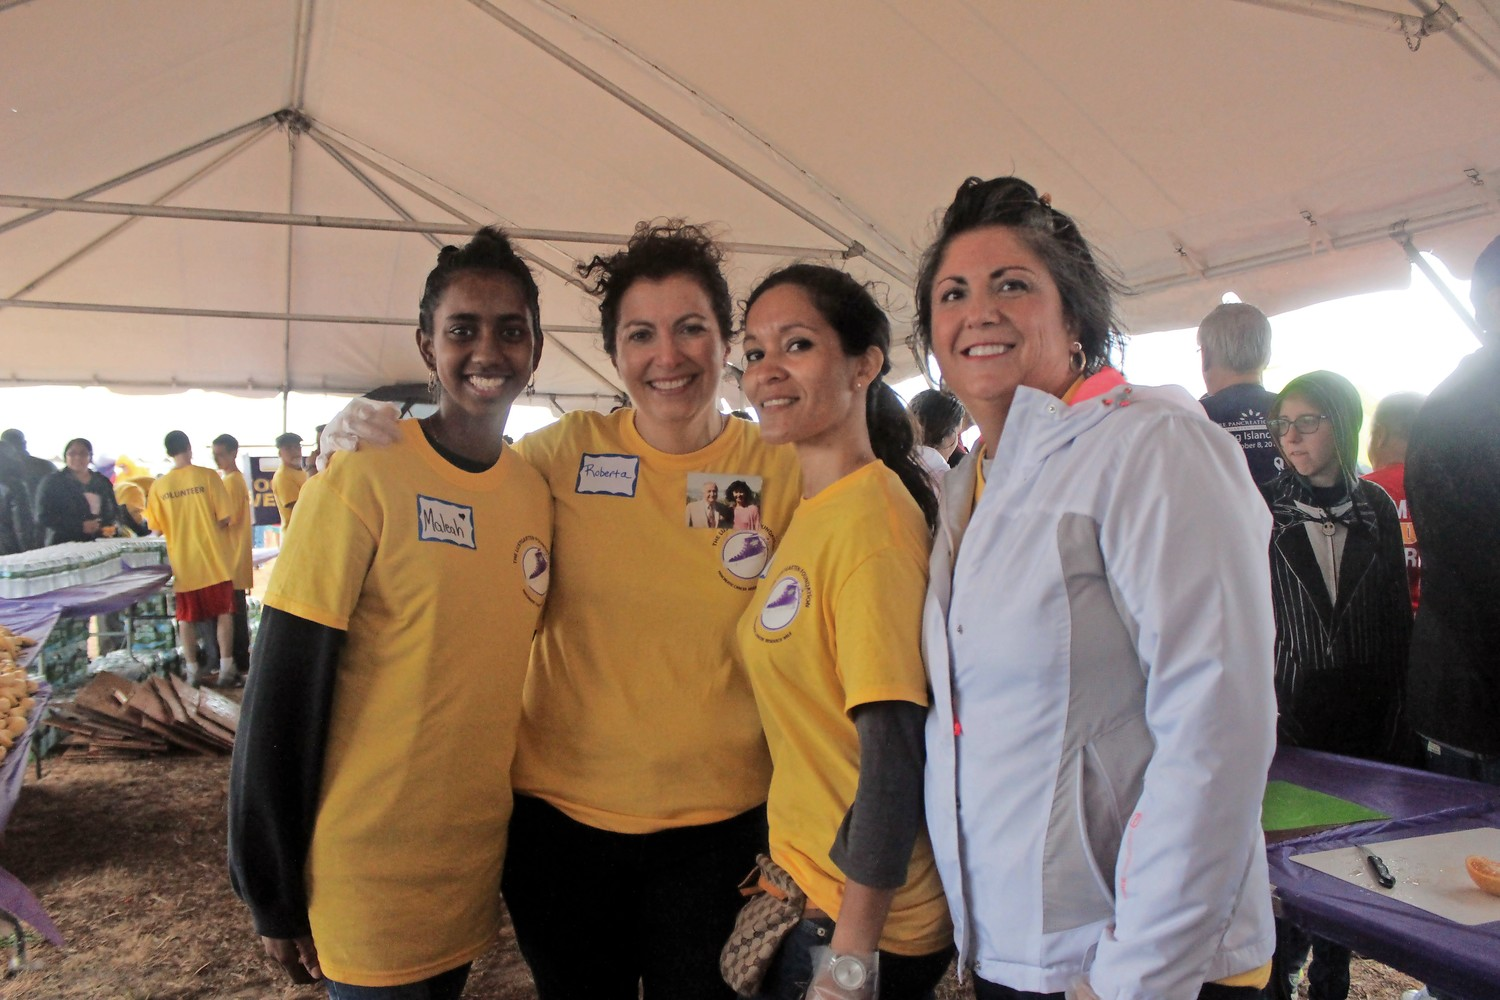 Volunteers from the Lustgarten Foundation were set up under large tents providing fresh fruit, water and shelter from the downpour. From left, Maleah Ishmael, Roberta Perrone, Eva Rodriquez and Rita Leo.